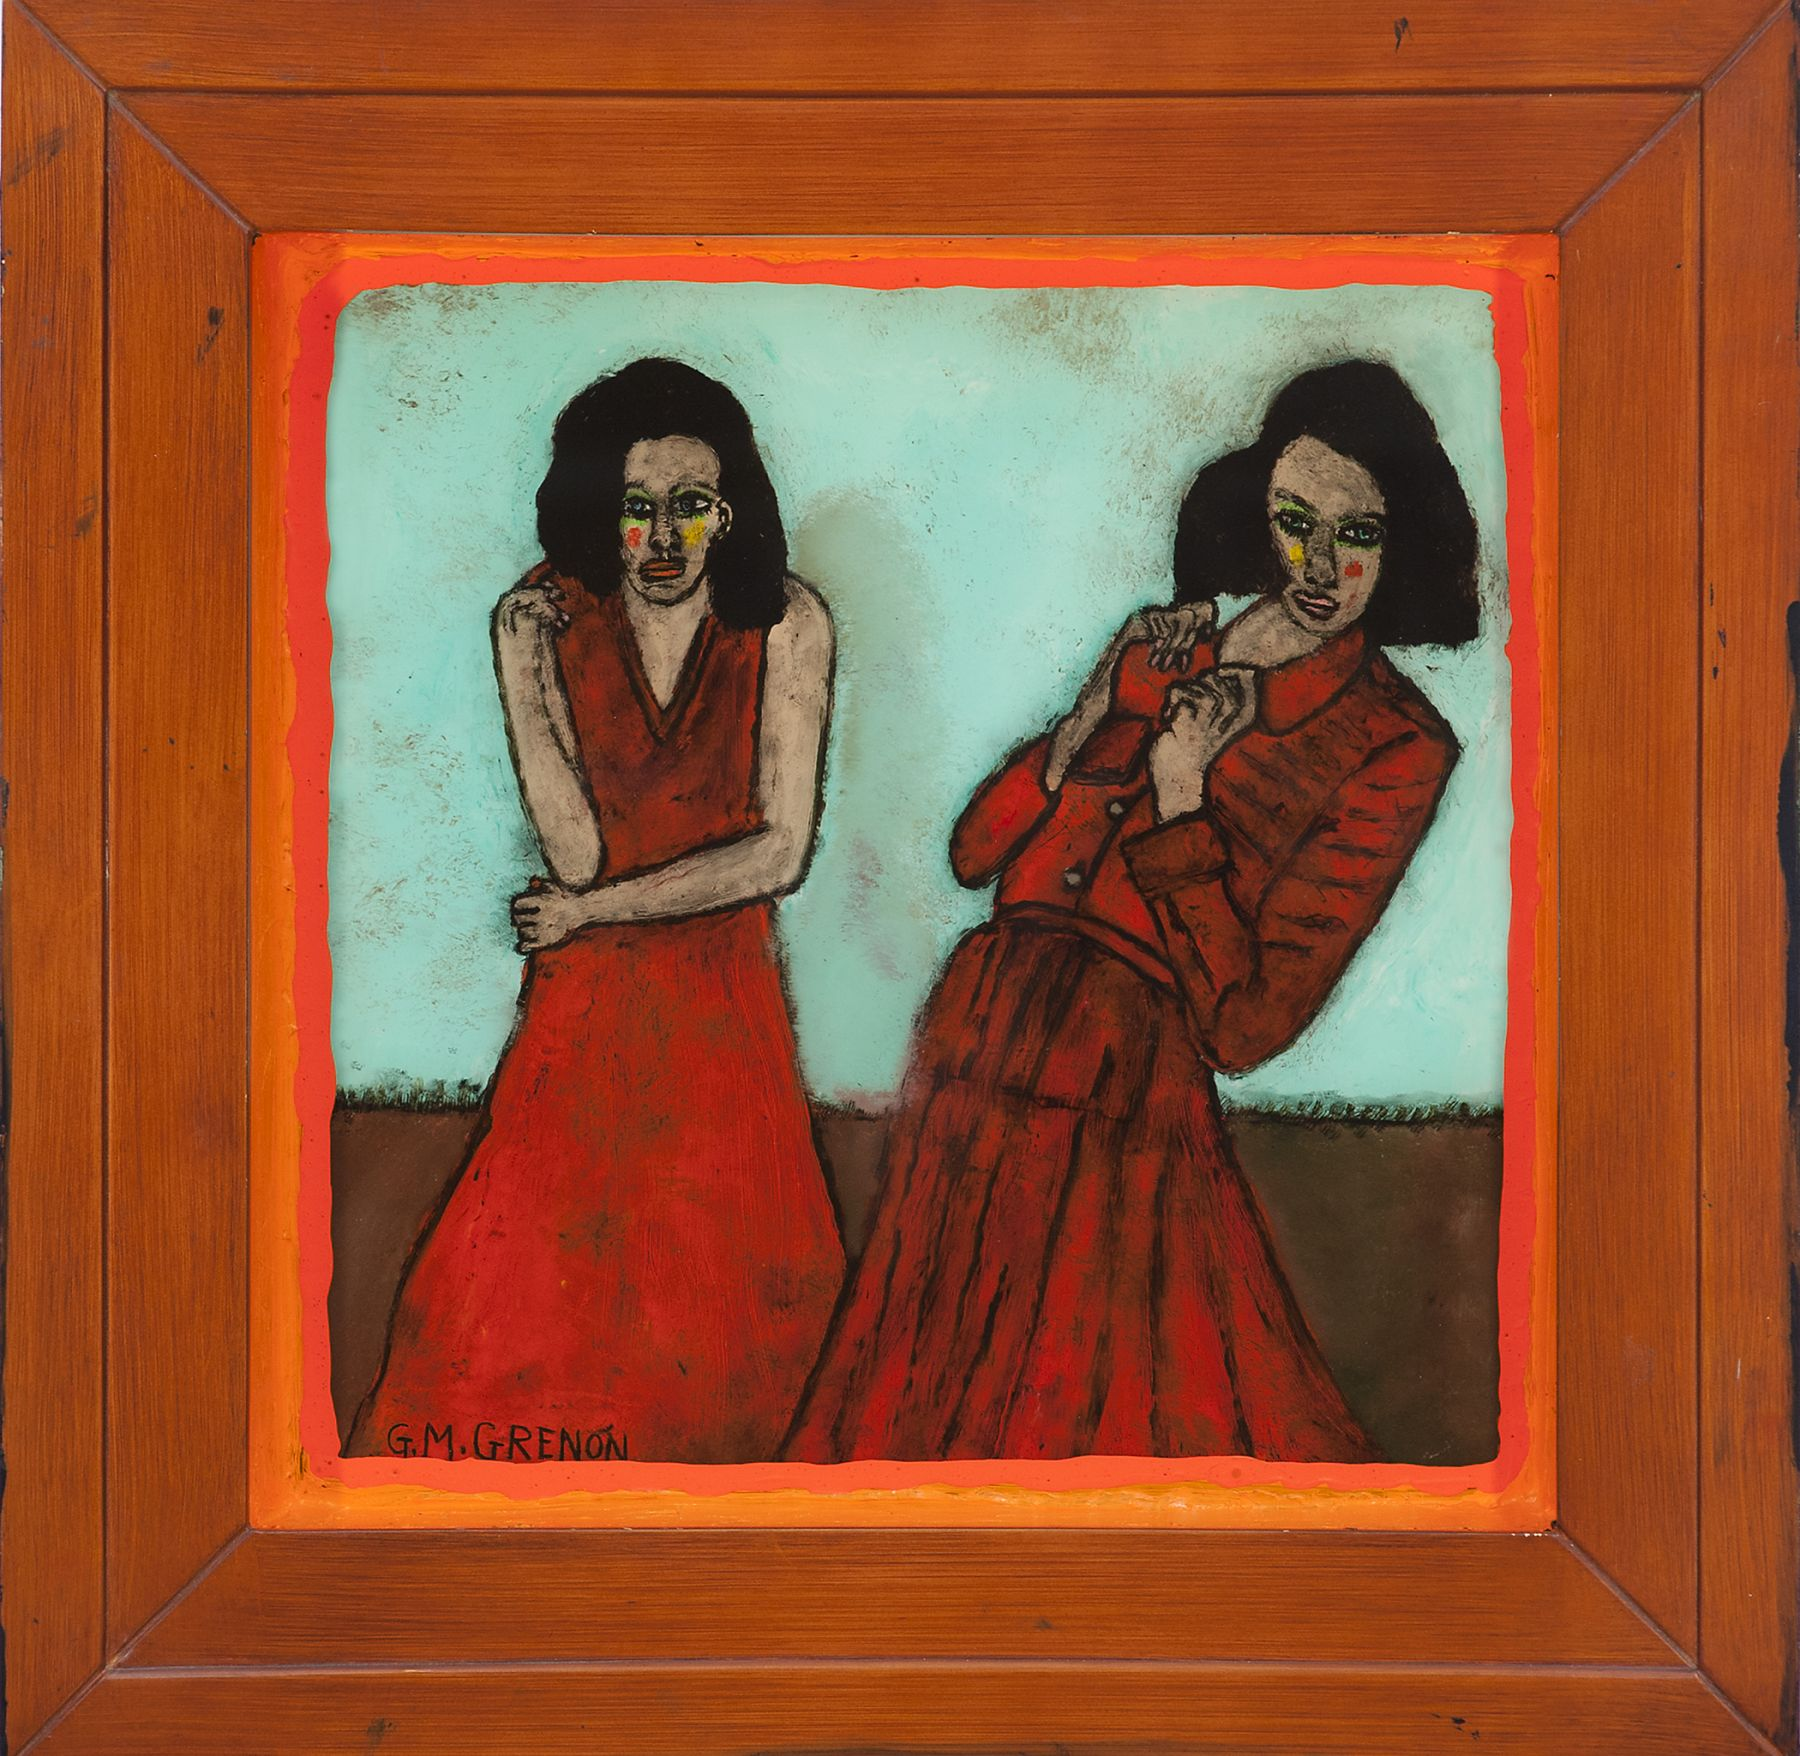 Grenon - Red Dresses